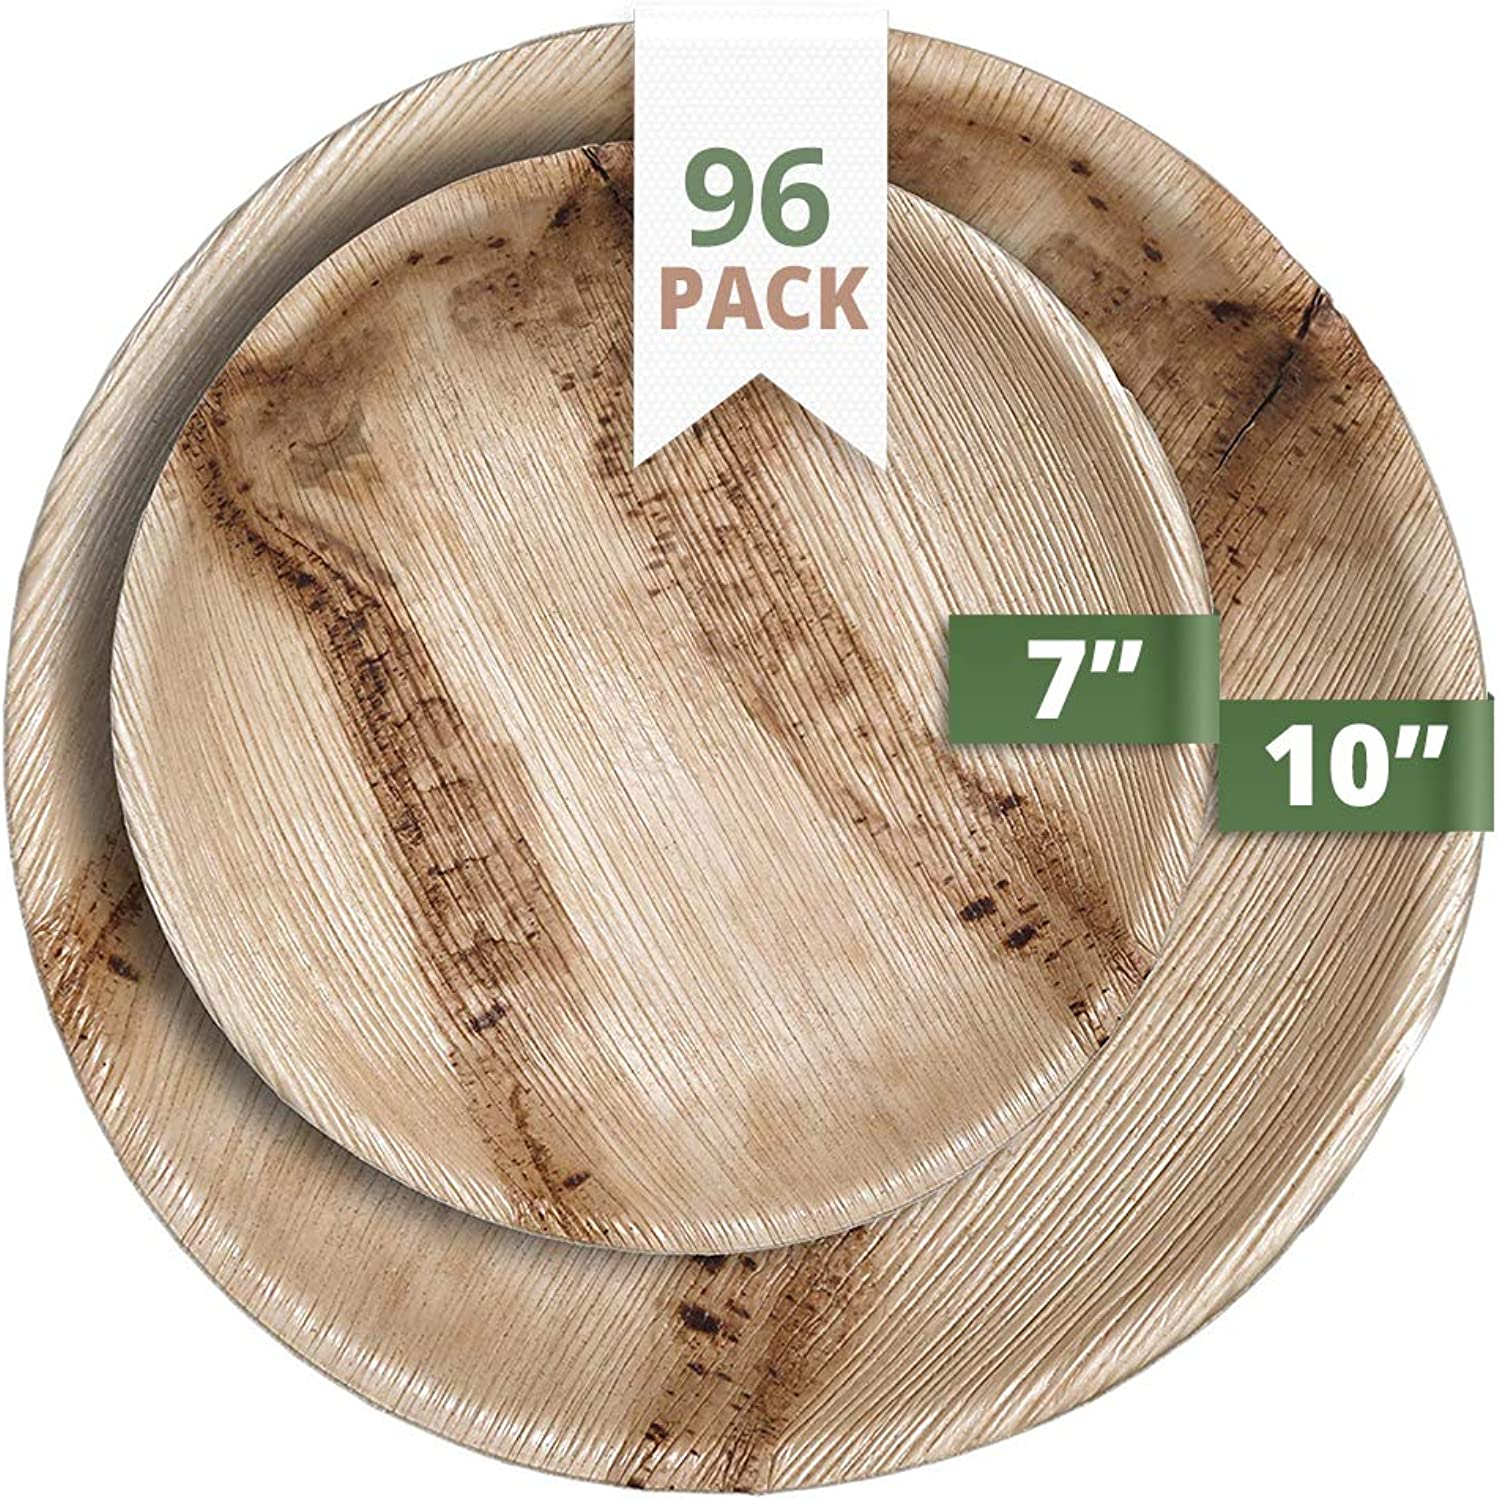 CaterEco Round Palm Leaf Plates Set   Pack of 96- (48) Dinner Plates and (48) Salad Plates   Ecofriendly Disposable Dinnerware   Heavy Duty Biodegradable Party Utensils for Wedding, Camping & More